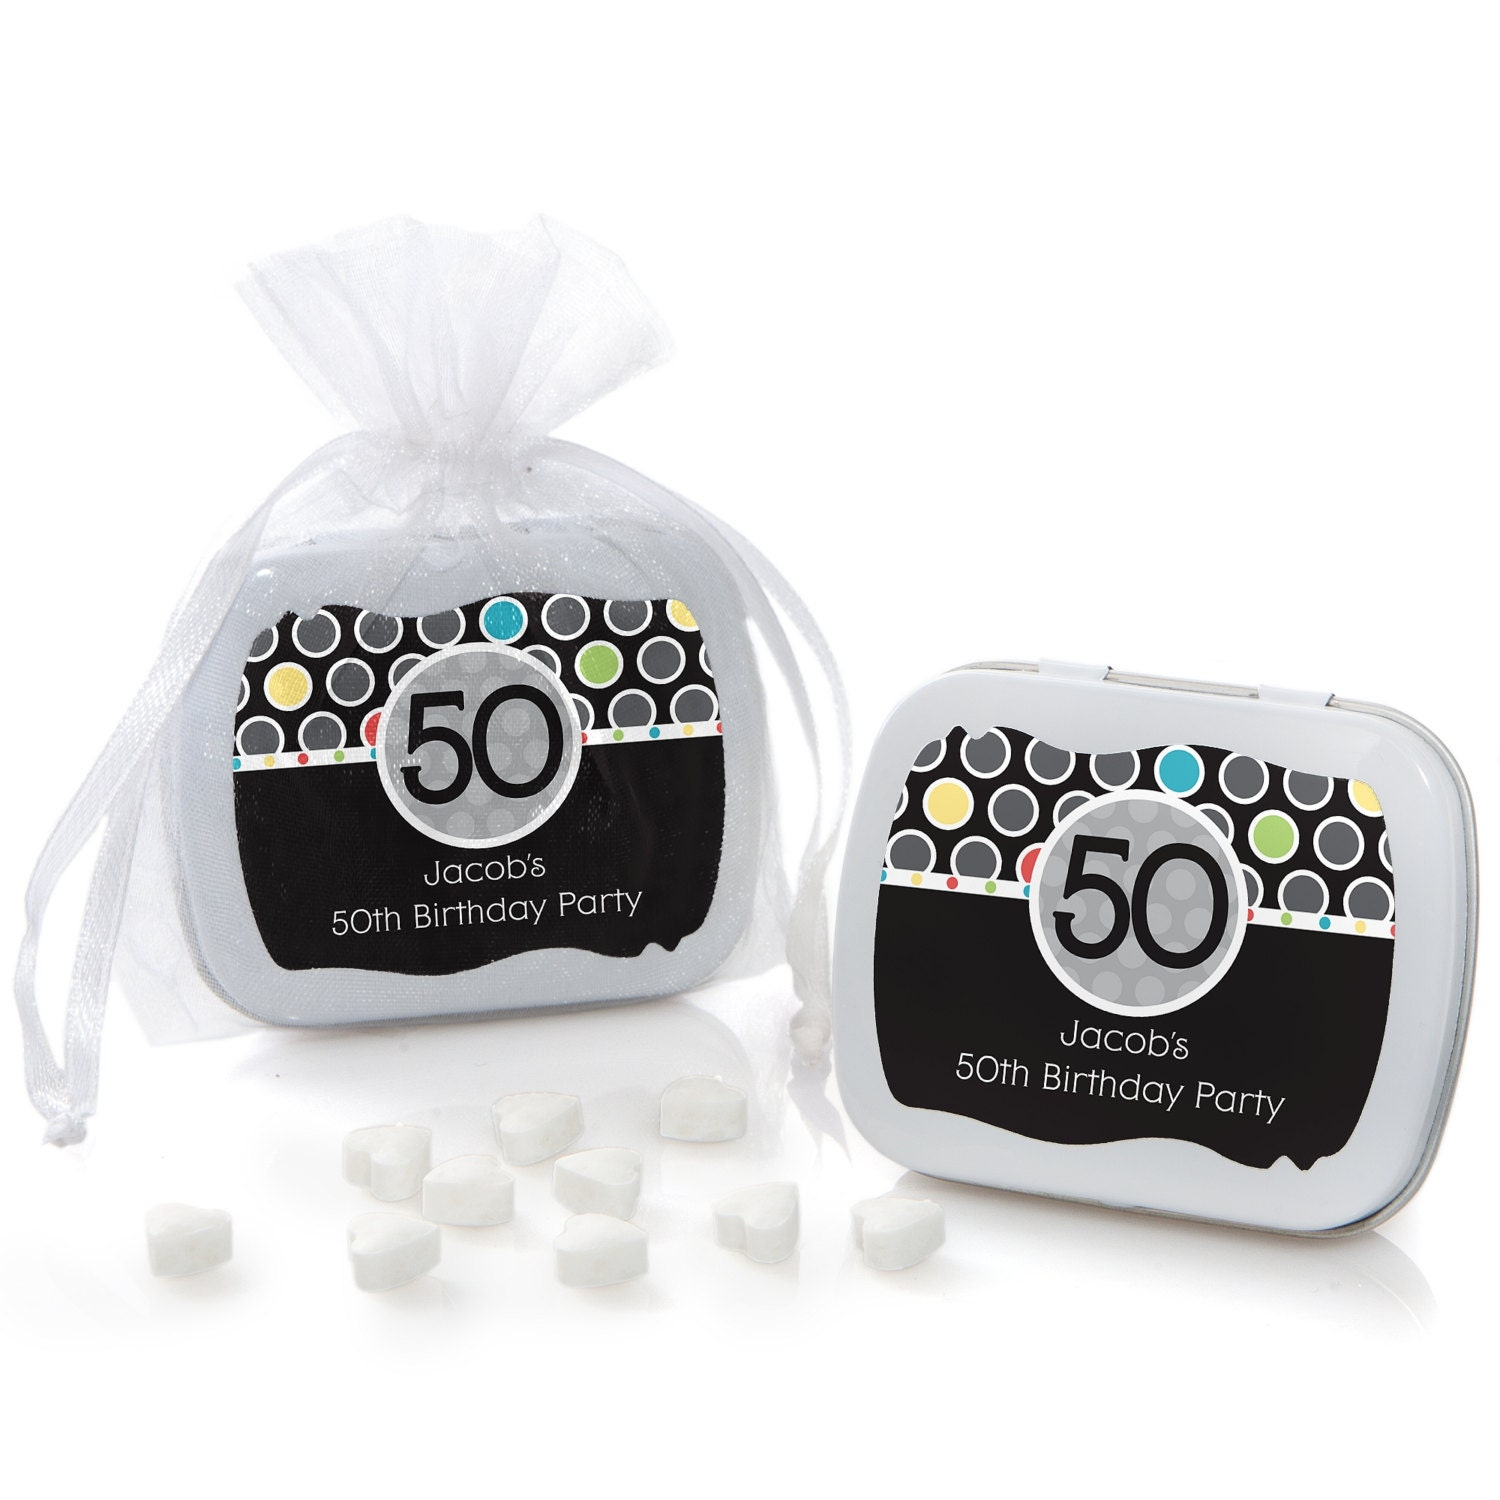 50th Birthday Party Favors For Adults Mint Tin Supplies